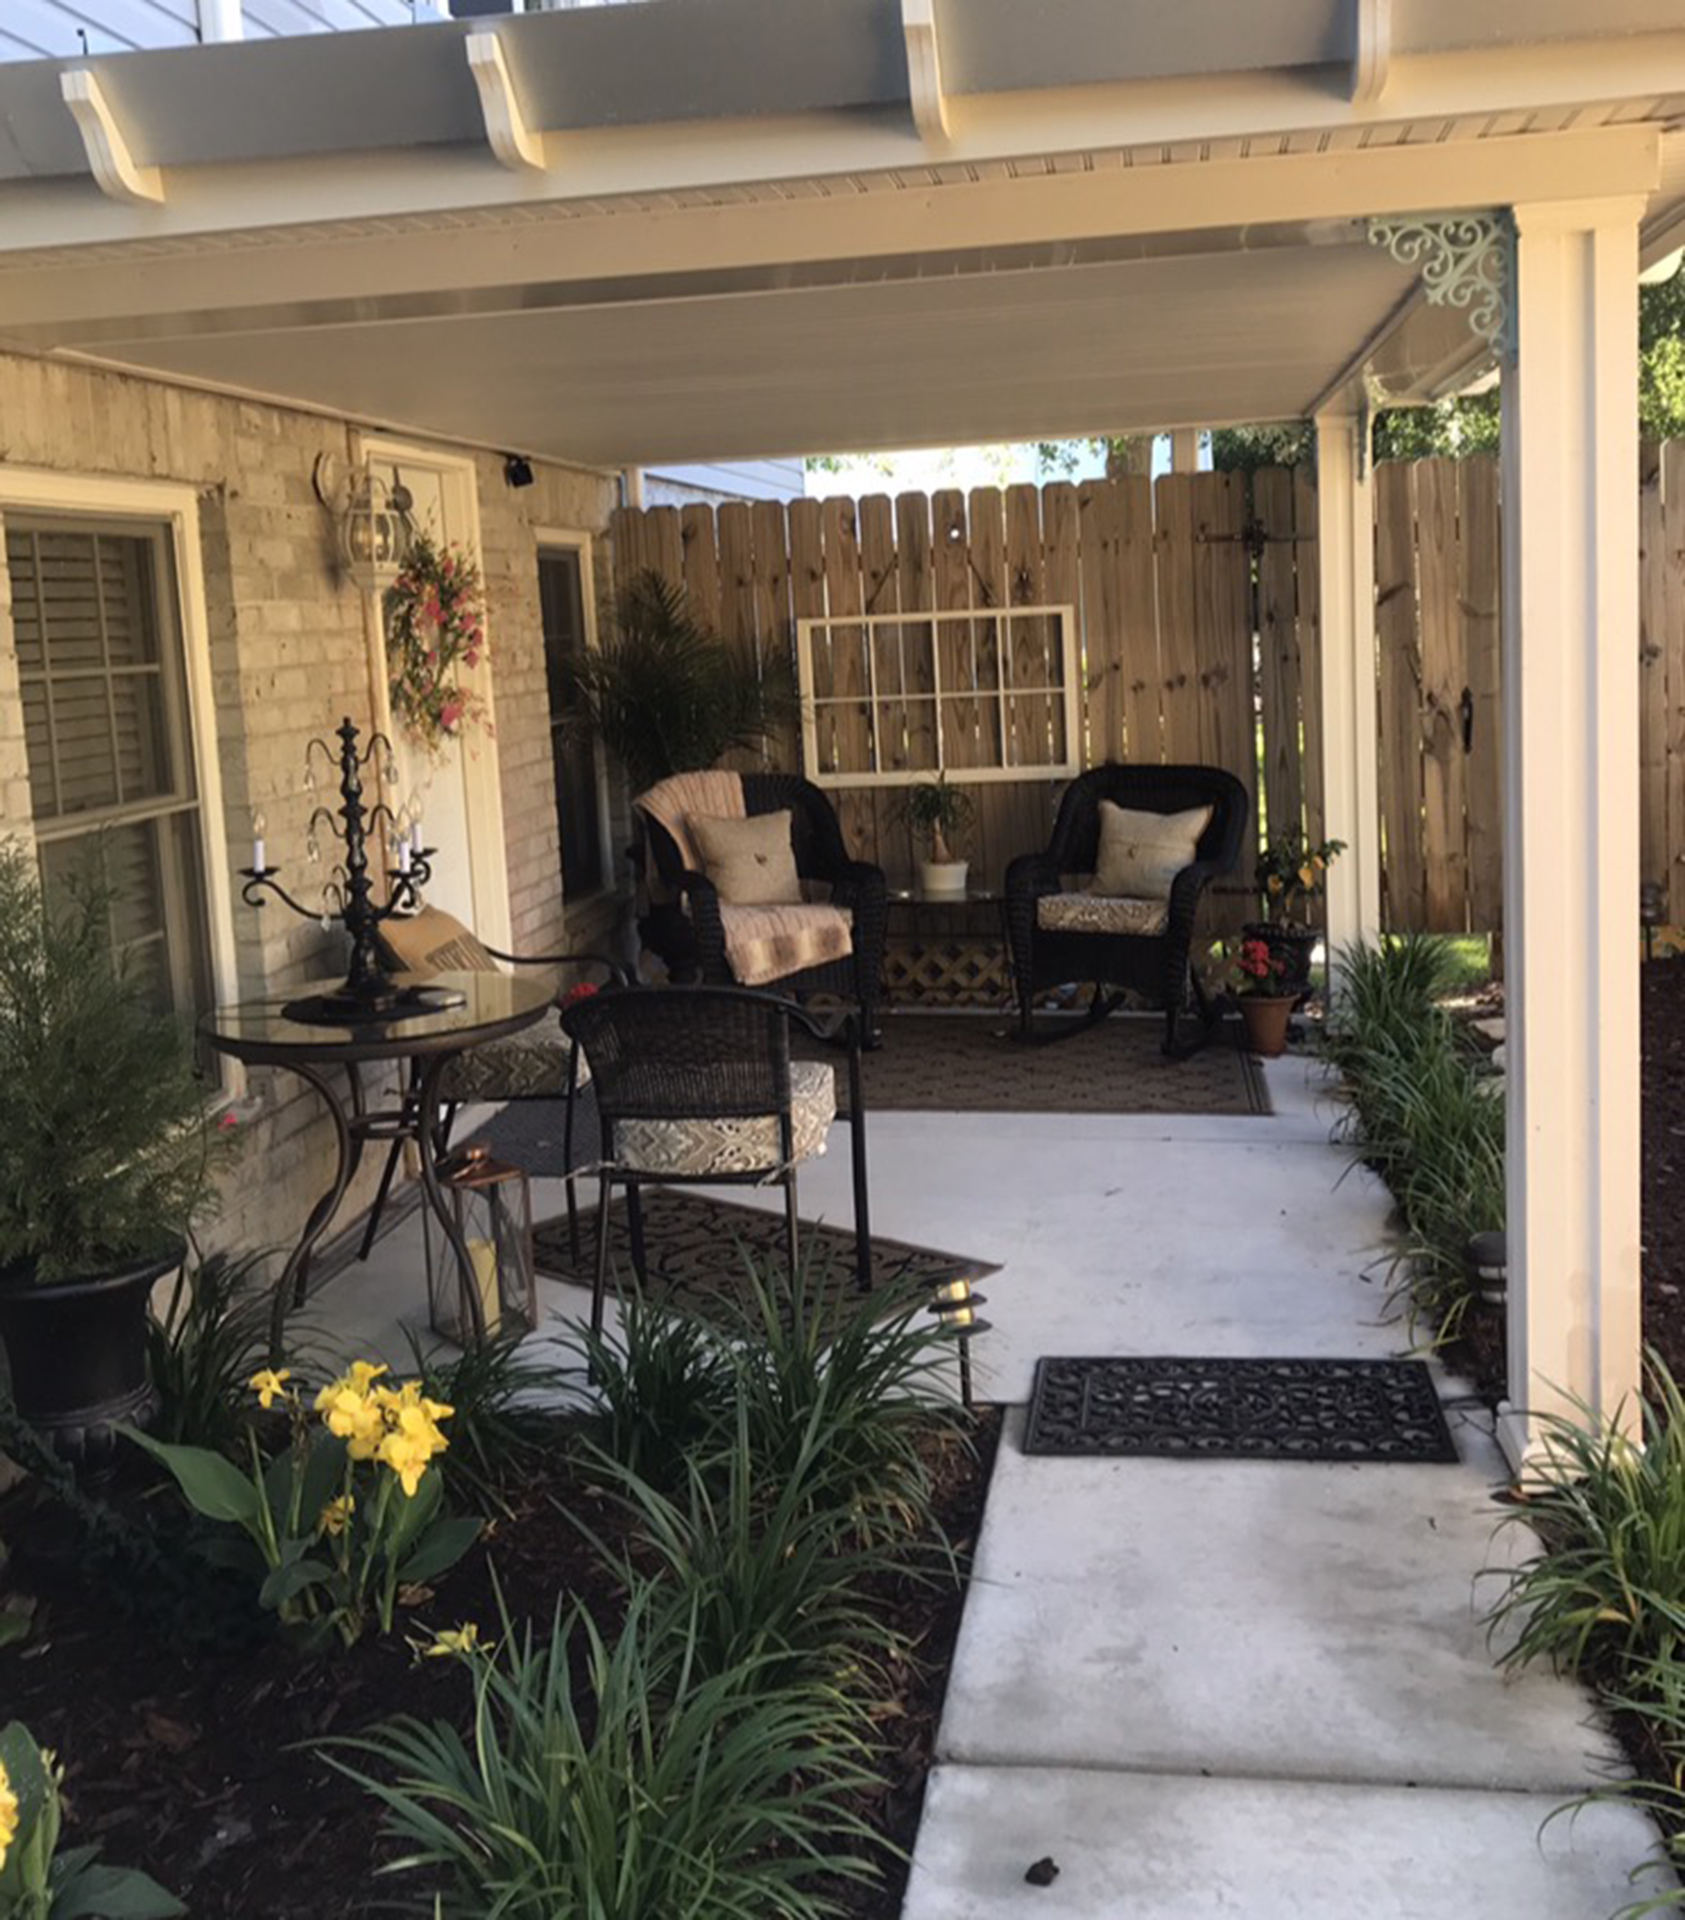 ... Refrigerator, Ice Machine, Microwave, Dishes, Glassware, And More!  Enjoy Itu0027s Private Entrance And Patio. You Wonu0027t Want To Leave!